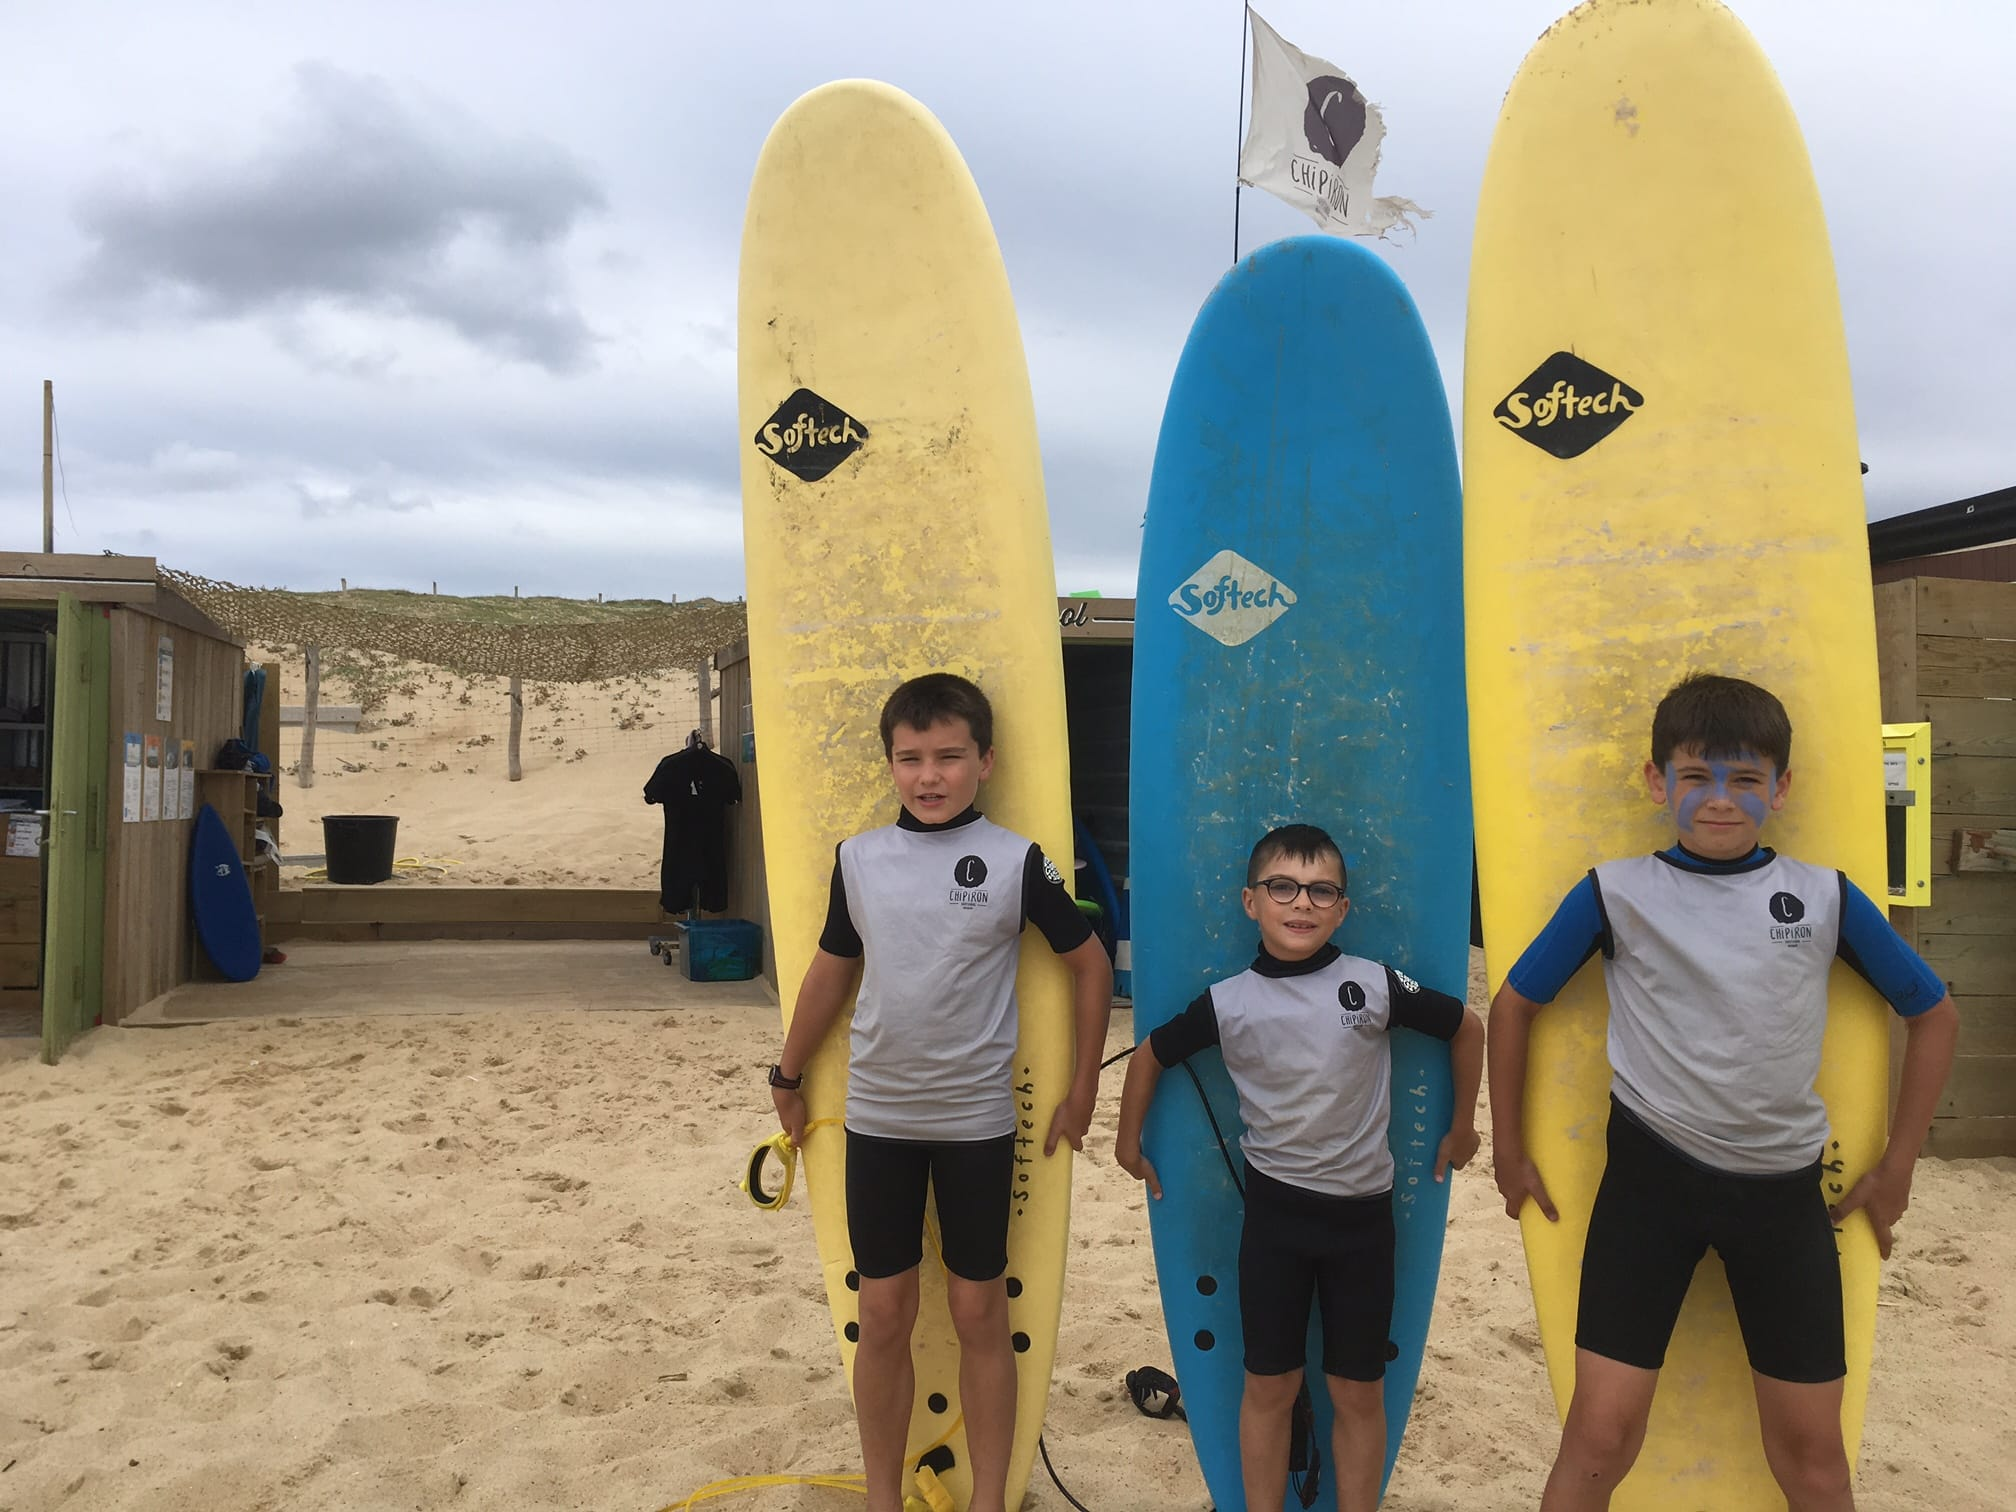 Chipiron Surfschool Hossegor